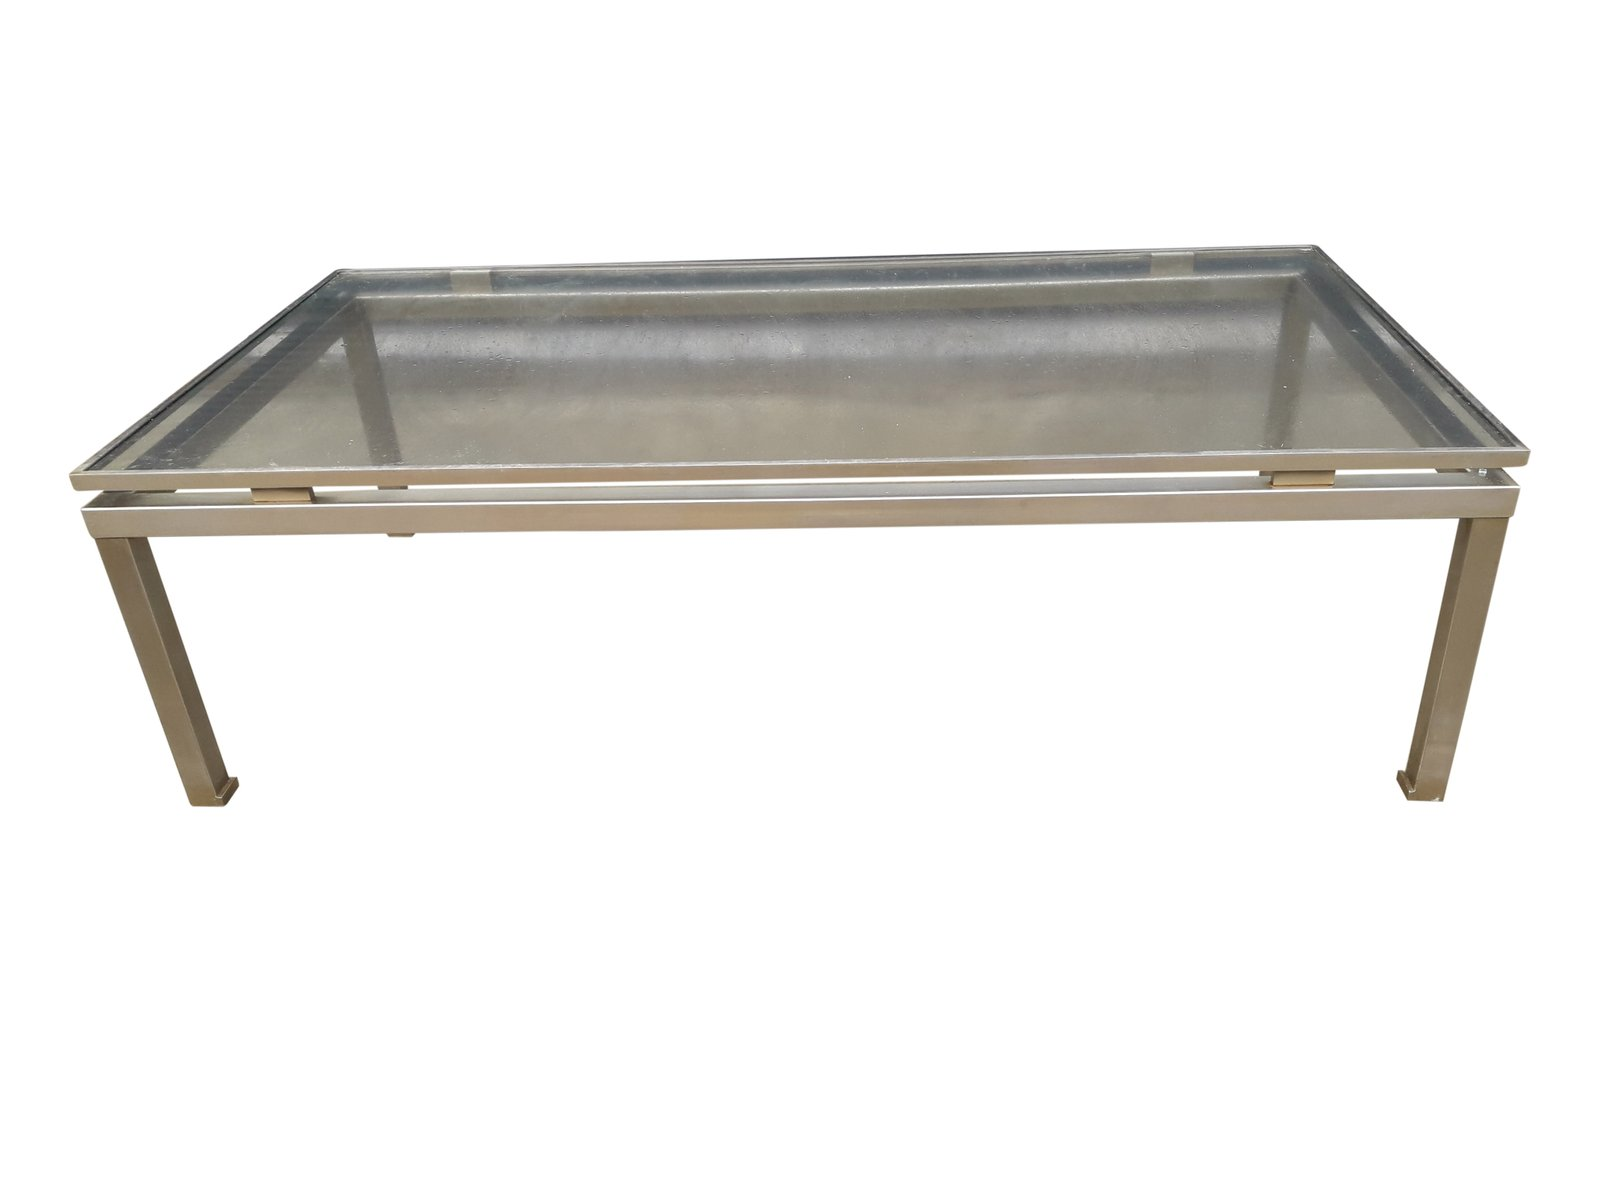 Modernist Brushed Steel Coffee Table By Guy Lefevre For Maison Jansen For Sale At Pamono